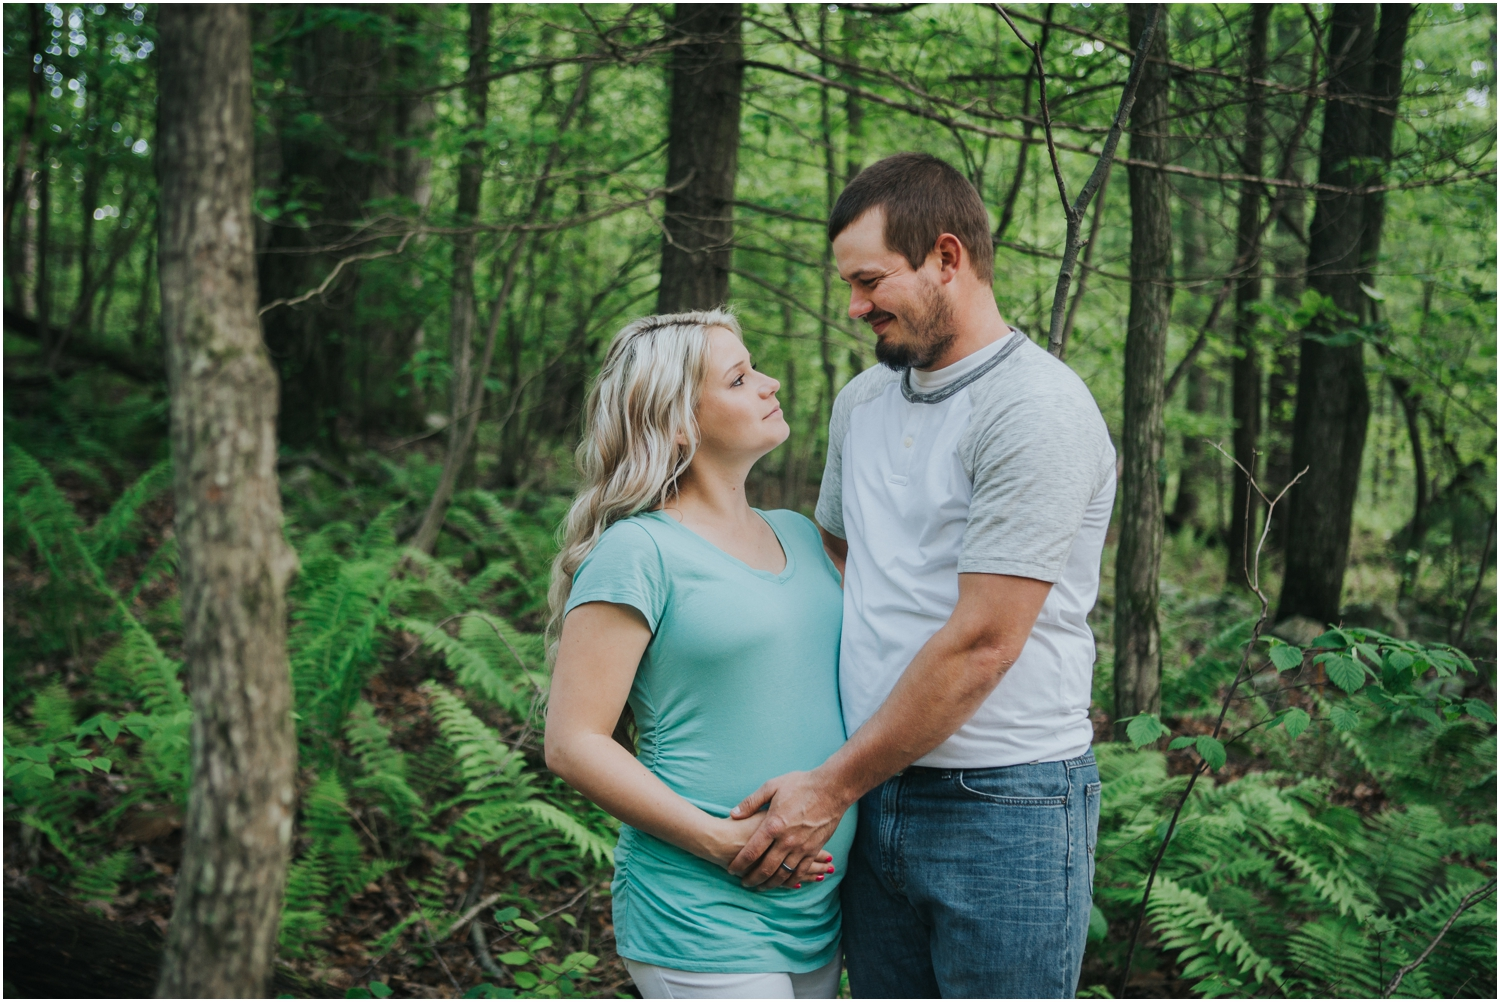 katy-sergent-photography-johnson-city-tennessee-northest-tn-elopement-intimate-wedding-photographer-outdoors-adventurous-couples-adventure-lovers_0004.jpg